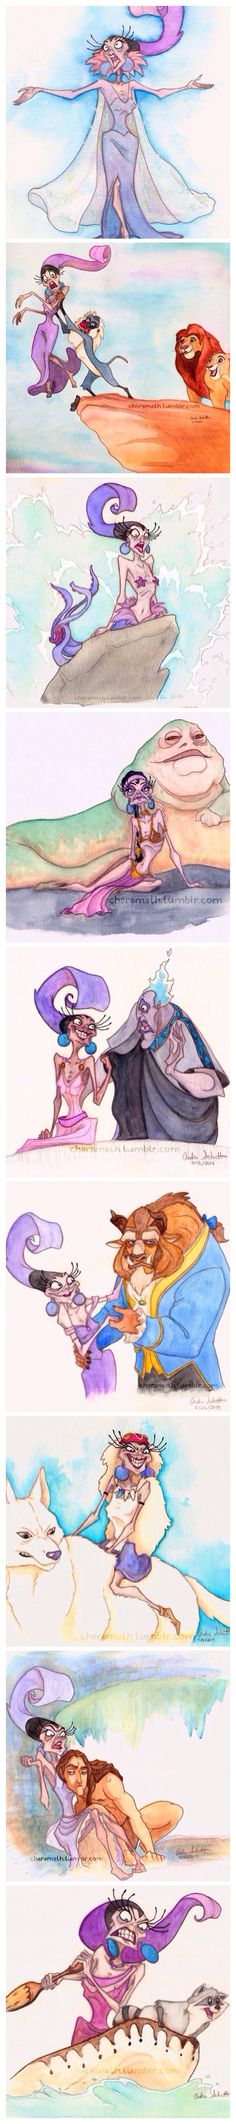 Yzma as Disney Princesses! Best thing ever.